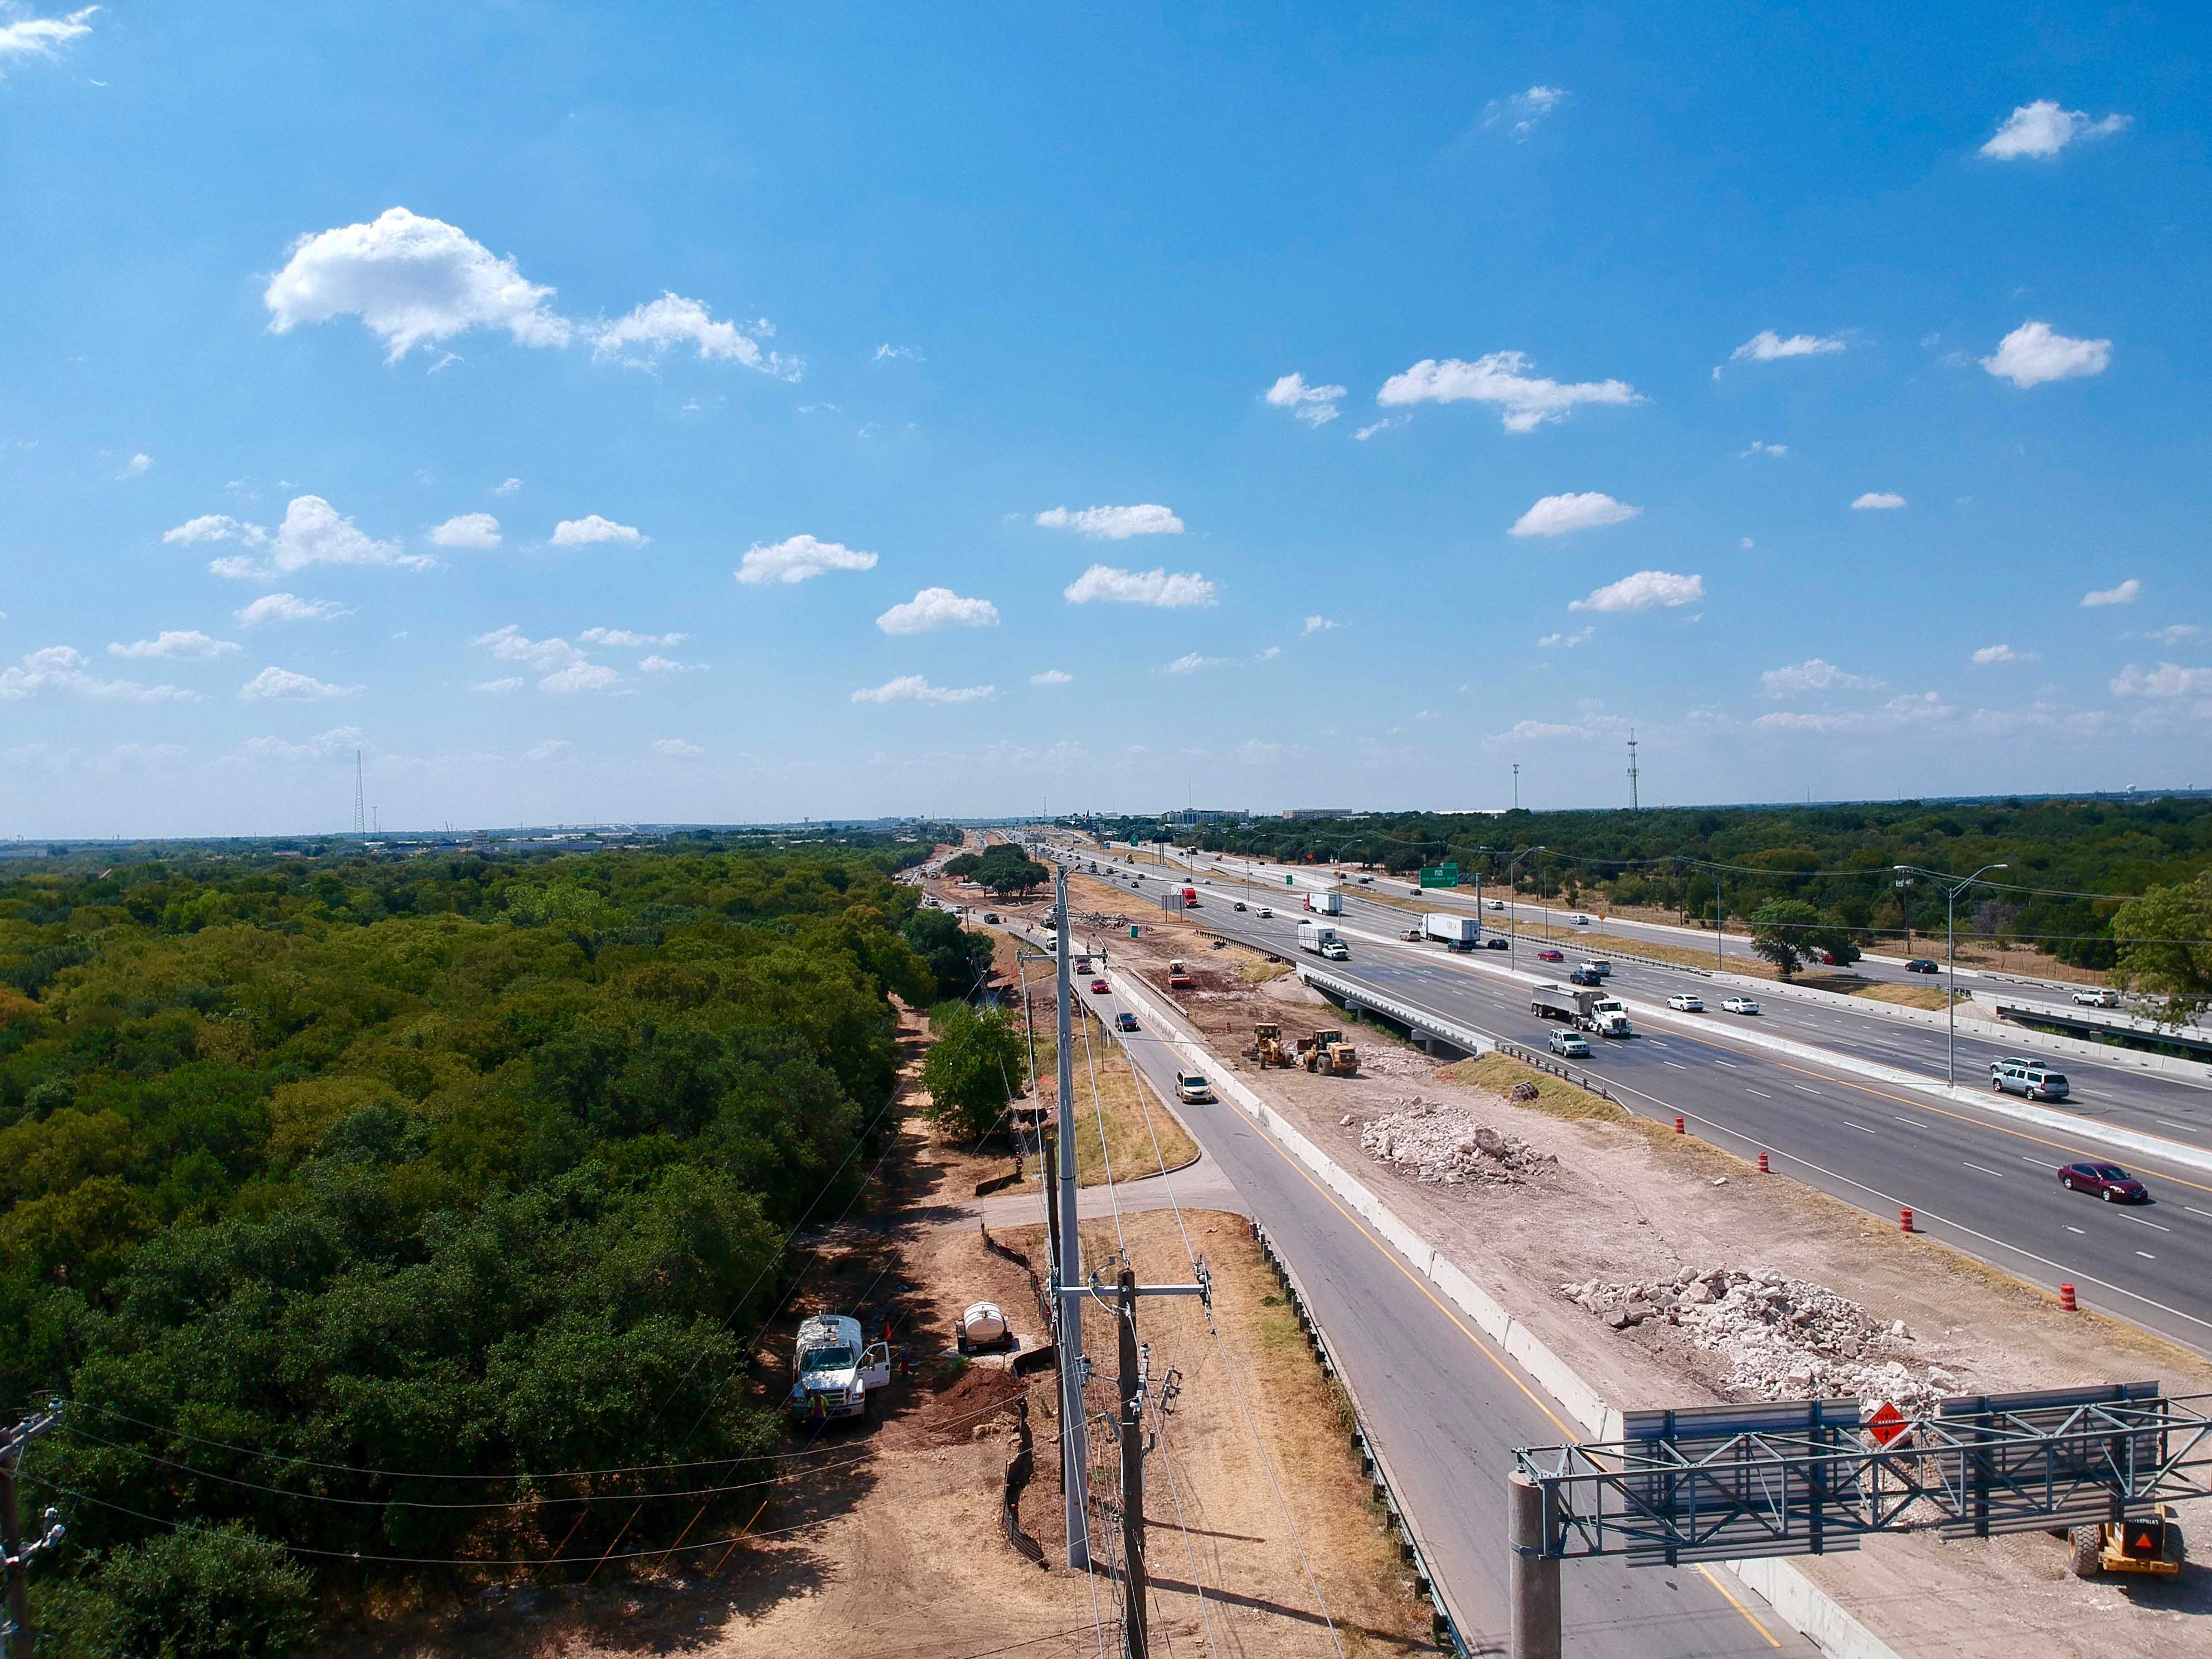 Northbound I-35 from FM 3406 to RM 1431 frontage road progress - September 2019